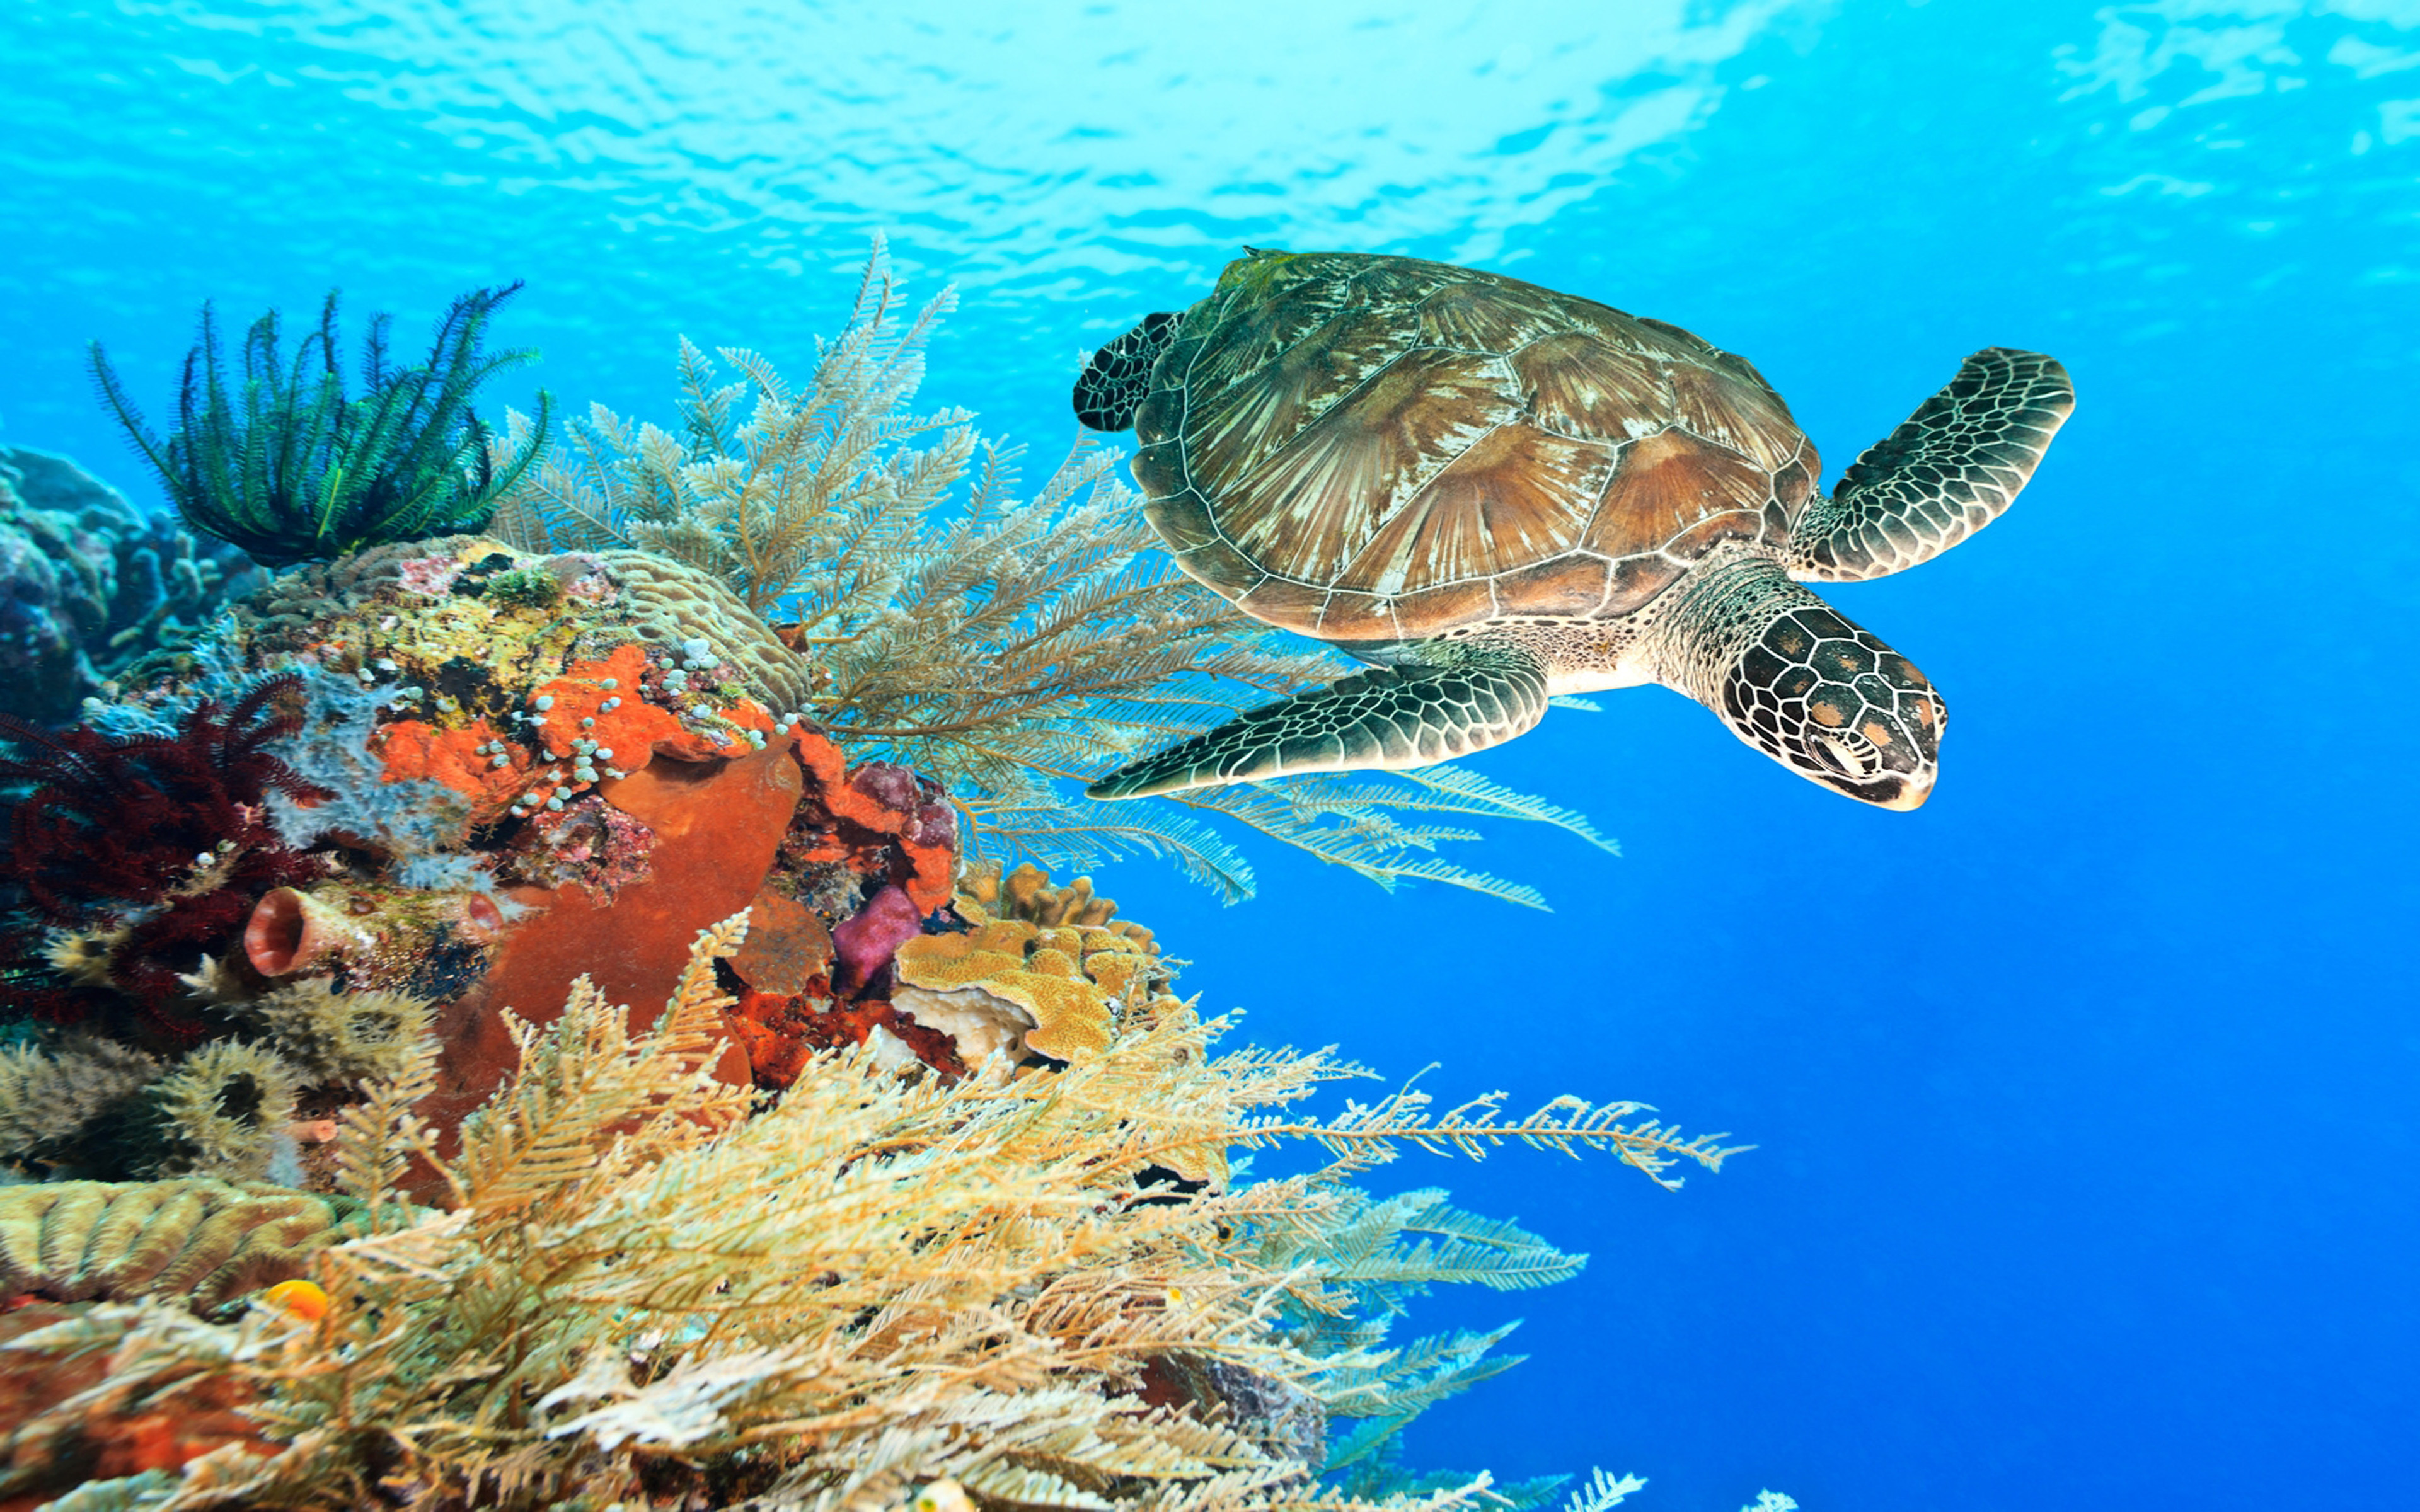 Fall Cartoon Wallpaper Turtle Swimming Underwater Among The Coral Reef